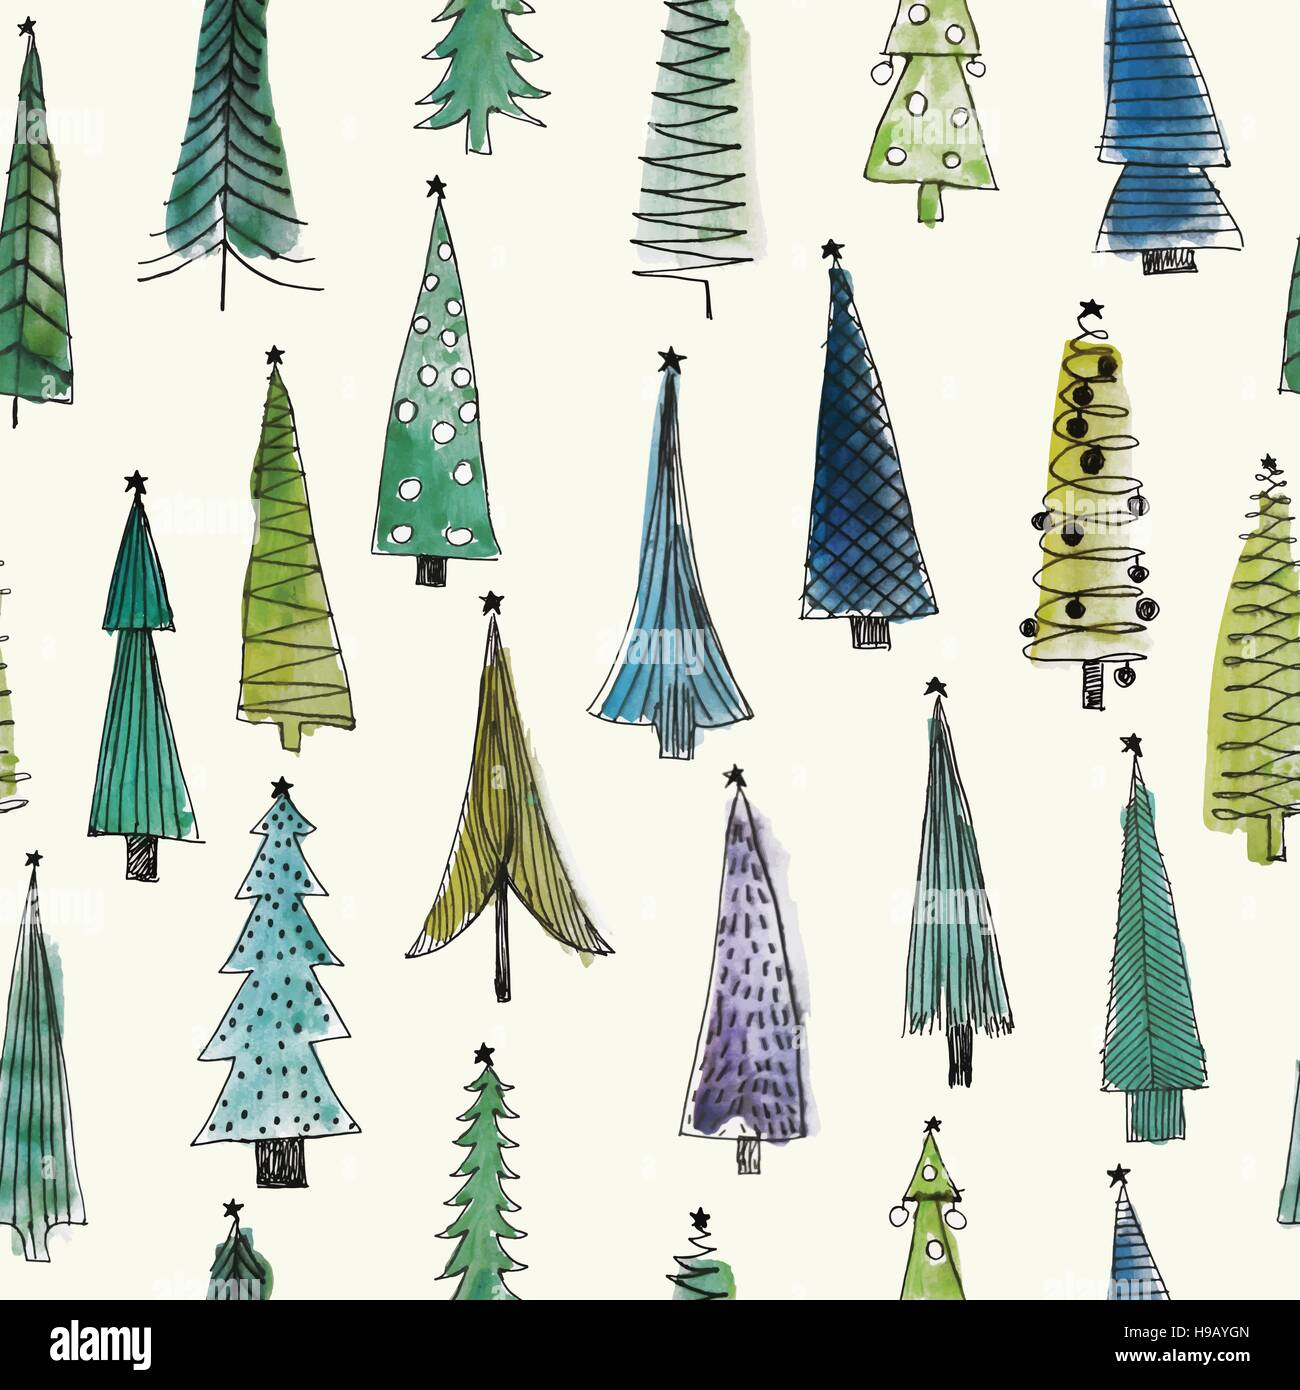 Watercolour Christmas Tree: Watercolor Christmas Trees/ Seamless Vector Pattern Stock